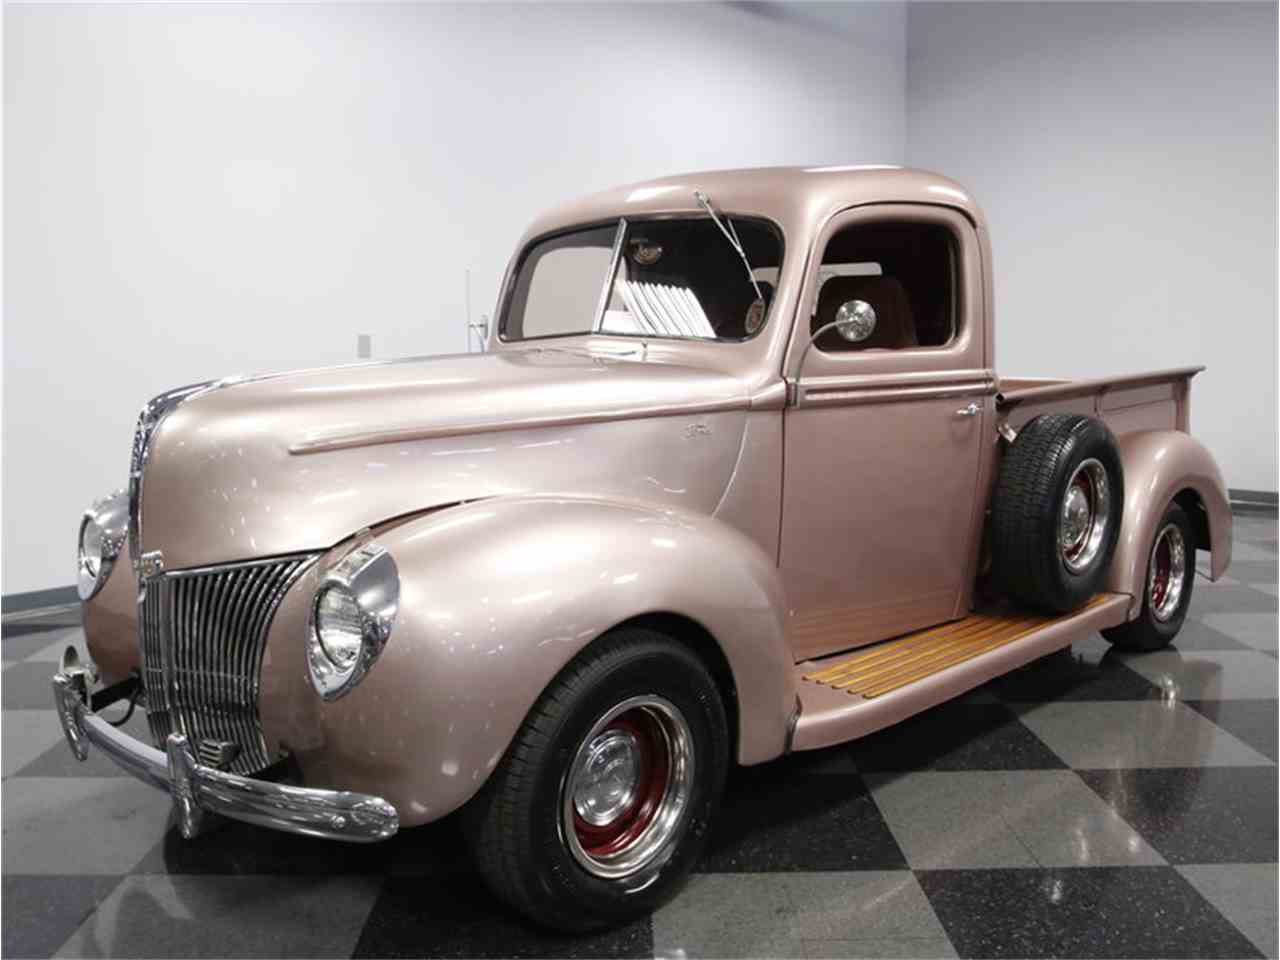 Large Picture of 1940 Ford Pickup located in North Carolina - $27,995.00 Offered by Streetside Classics - Charlotte - L3RM